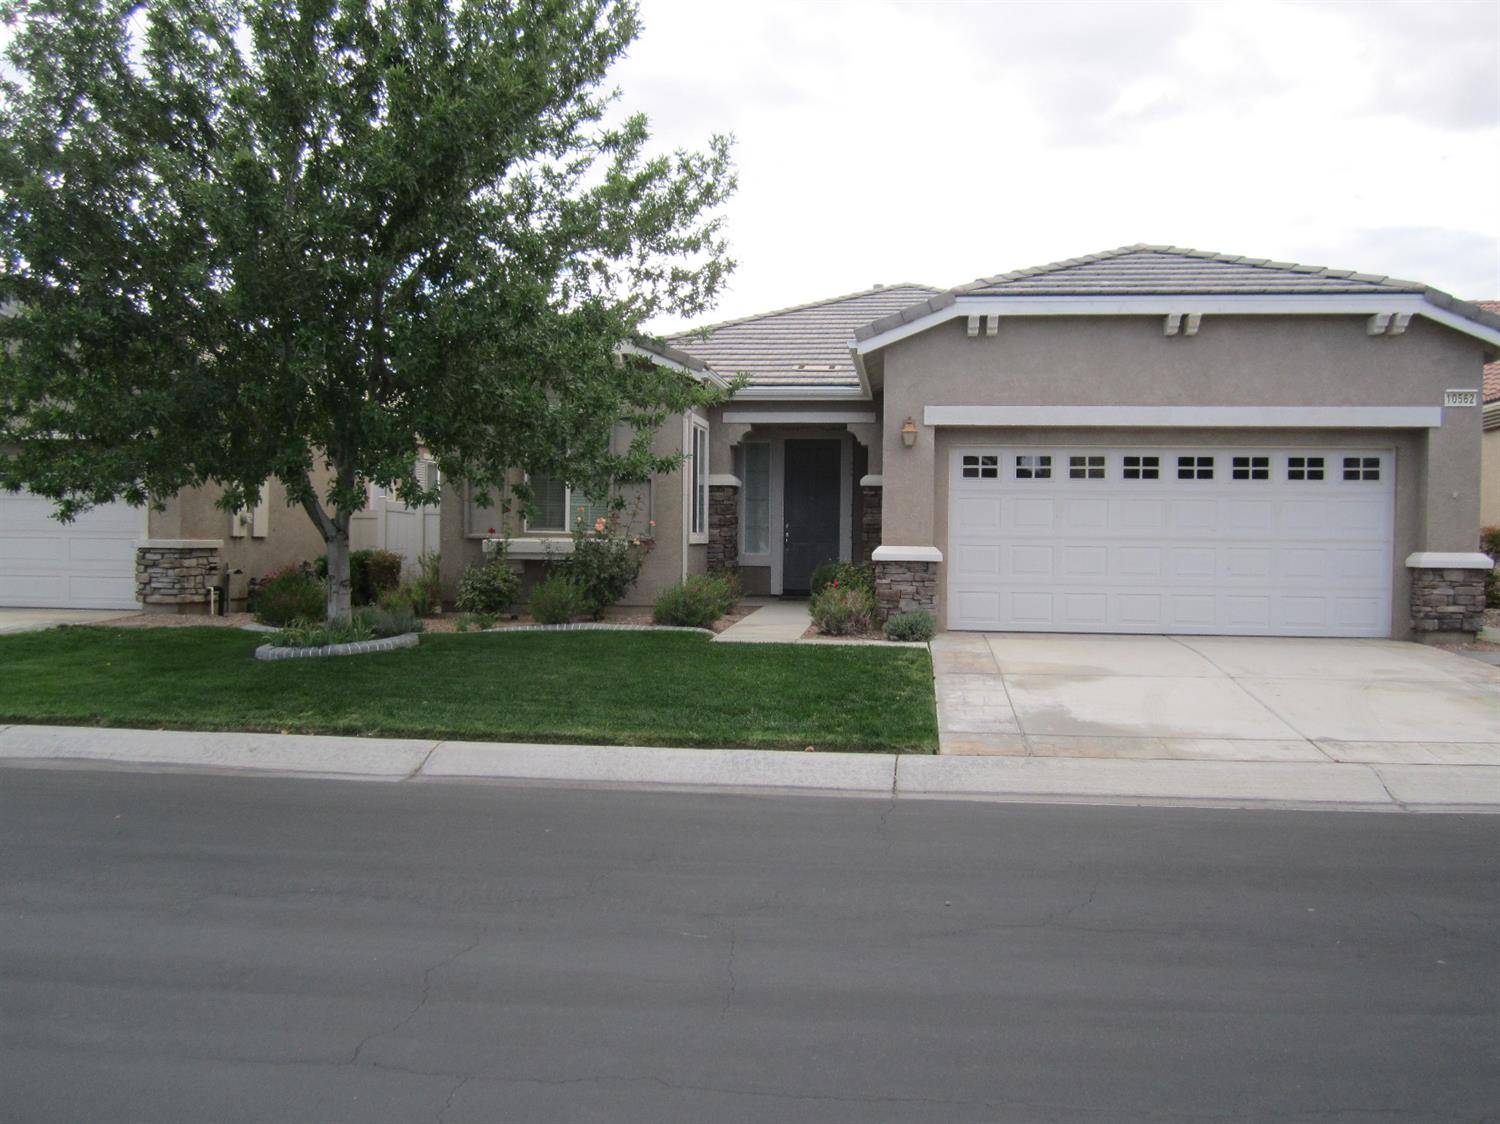 All homes for sale 55places 10562 bridge haven road apple valley ca 92308 malvernweather Choice Image